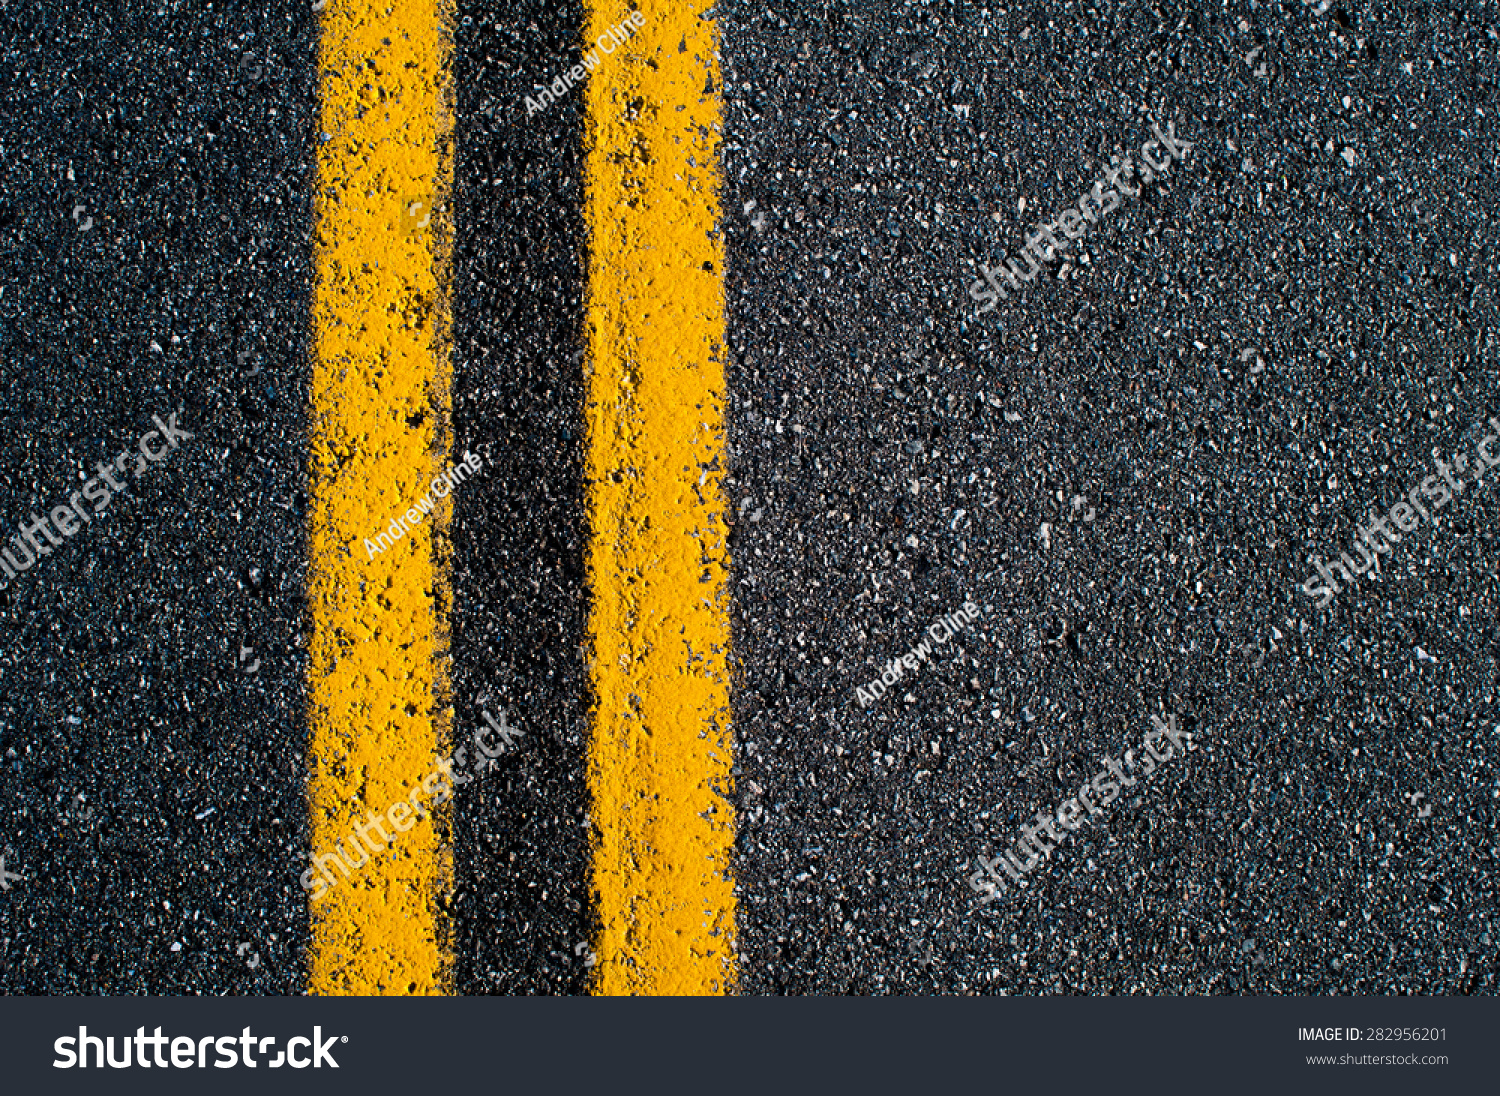 Double yellow line on black asphalt road.  #282956201